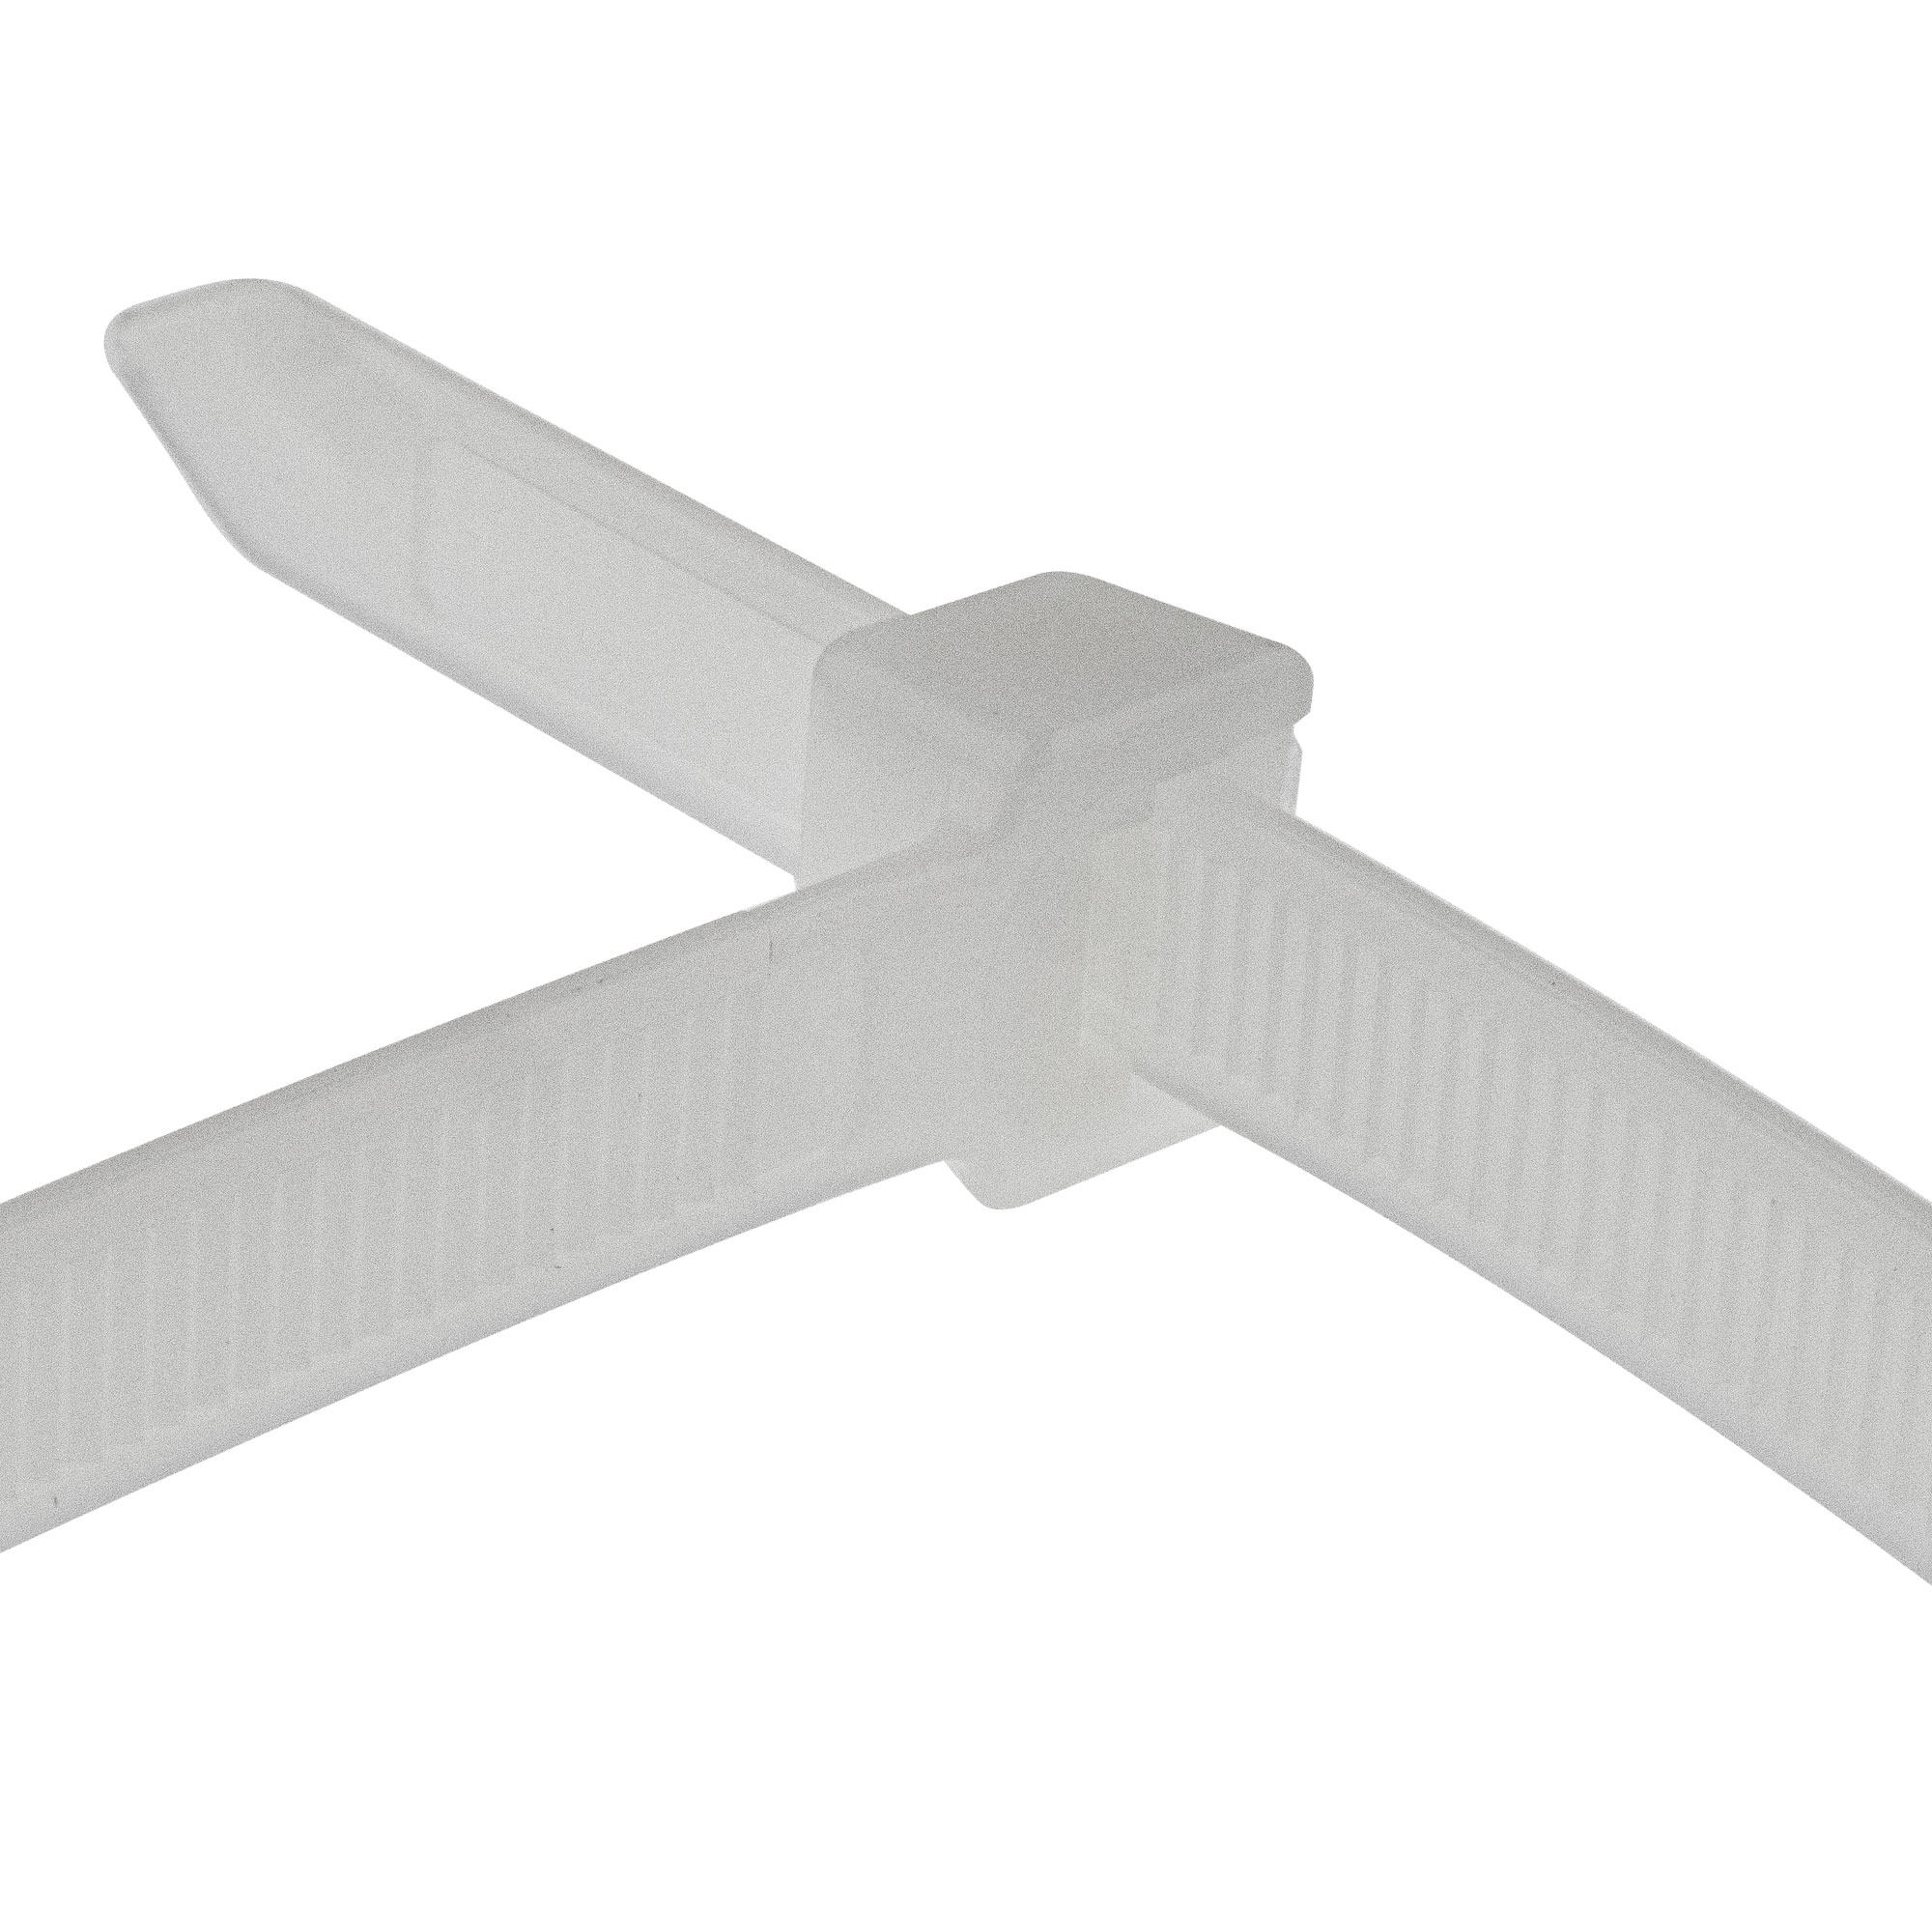 Cable tie self-locking 550 x 7,6mm, white, 100PCS